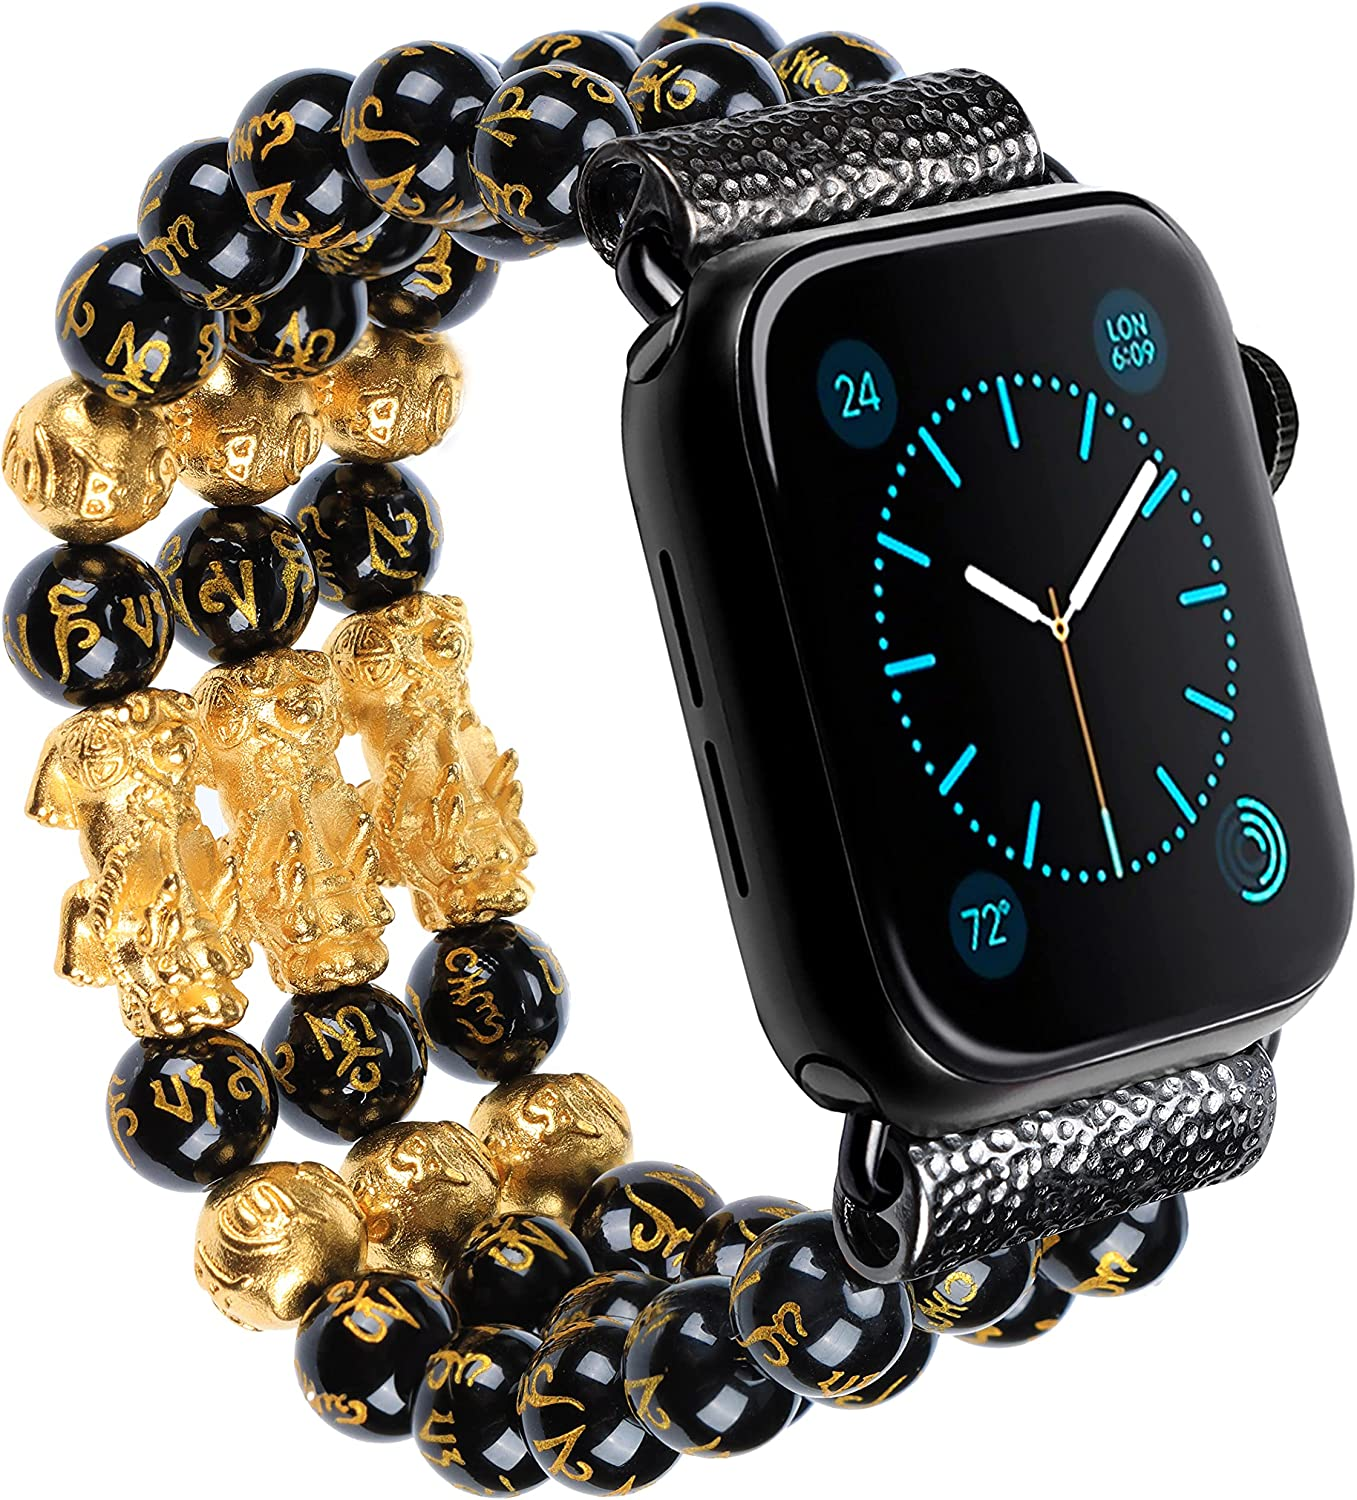 Feng Shui Good Luck Pi Xiu Bracelet Beaded Band Compatible with Apple Watch SE 6 5 4 3 2 1 iwatch 38mm 40mm 42mm 44mm Black Obsidian Wealth Bracelet Band